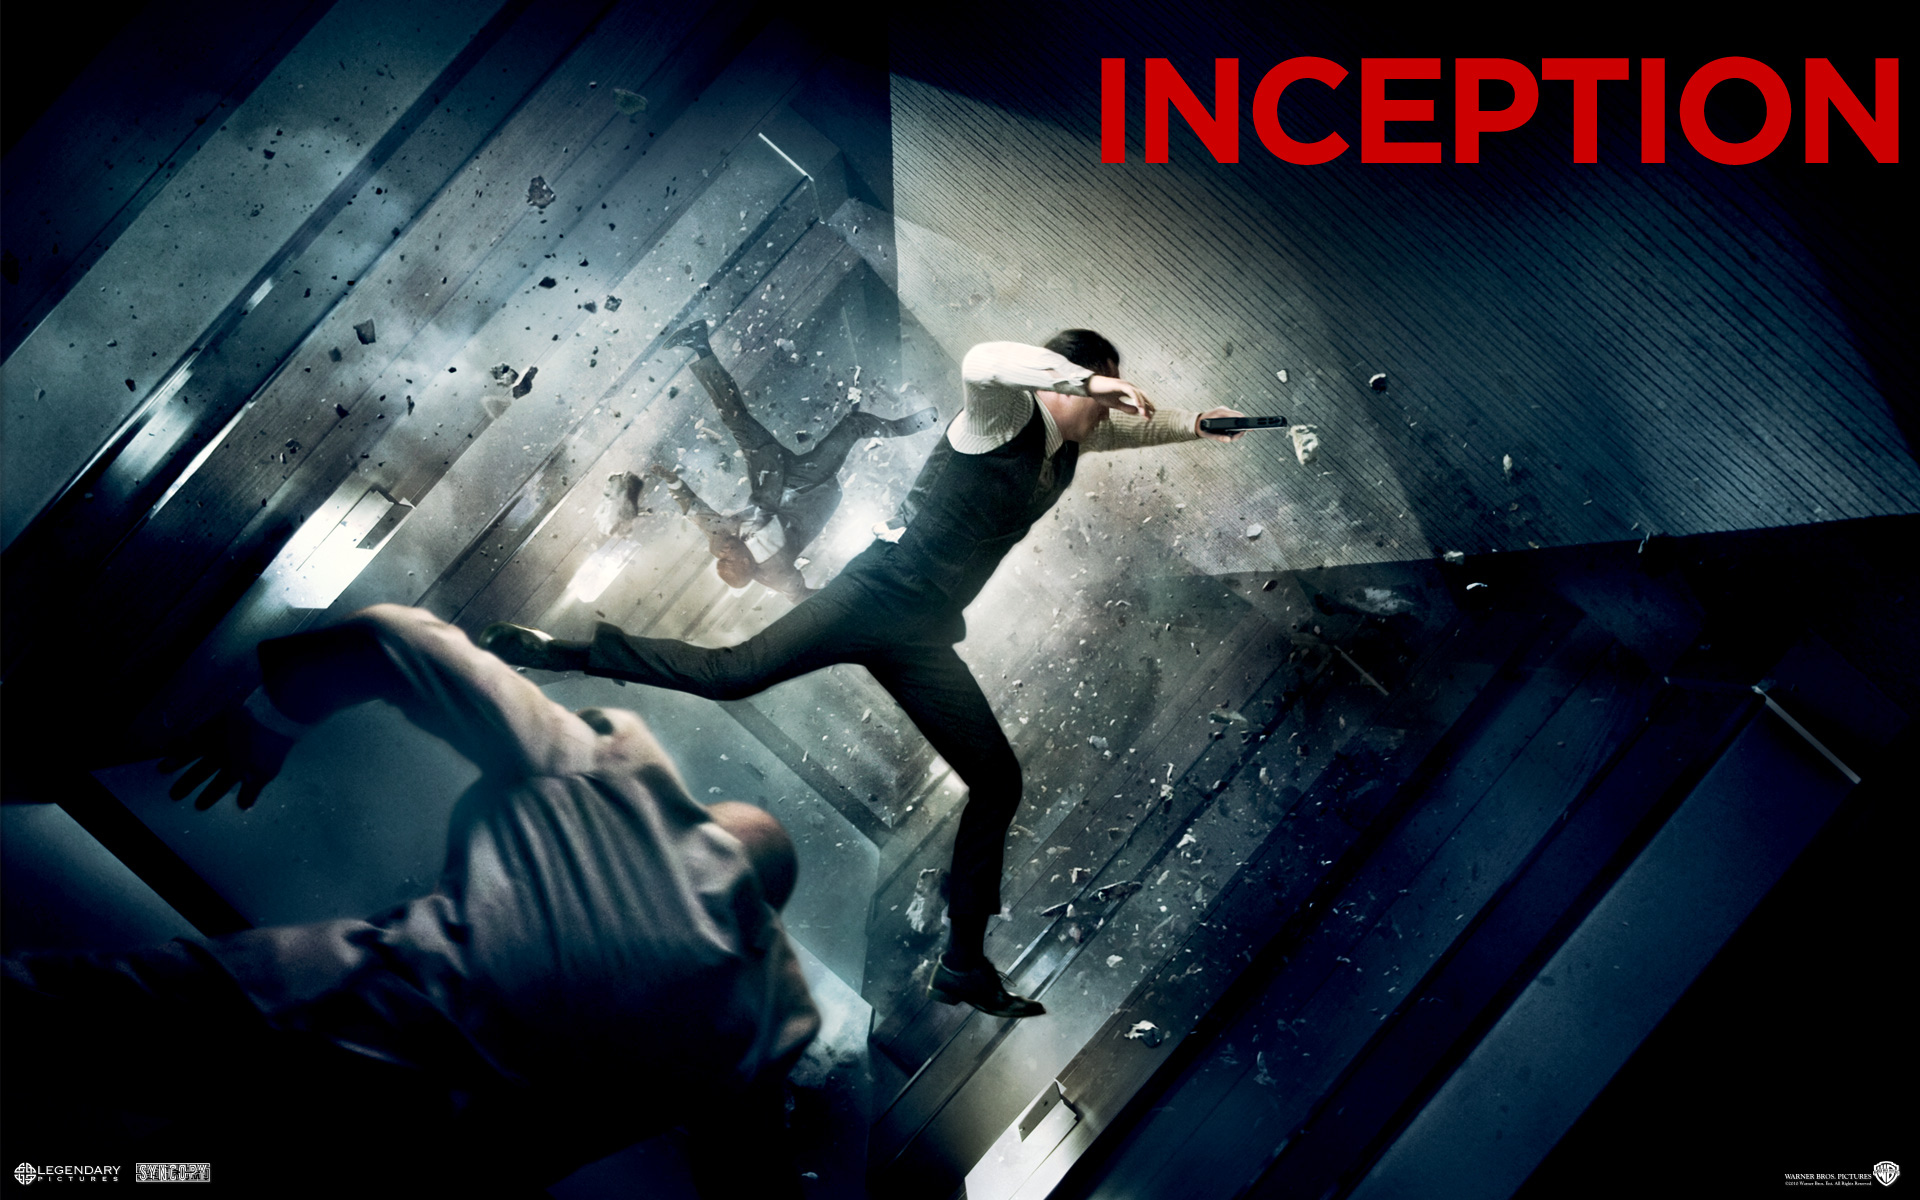 Joseph Gordon Levitt in Inception 253.93 Kb